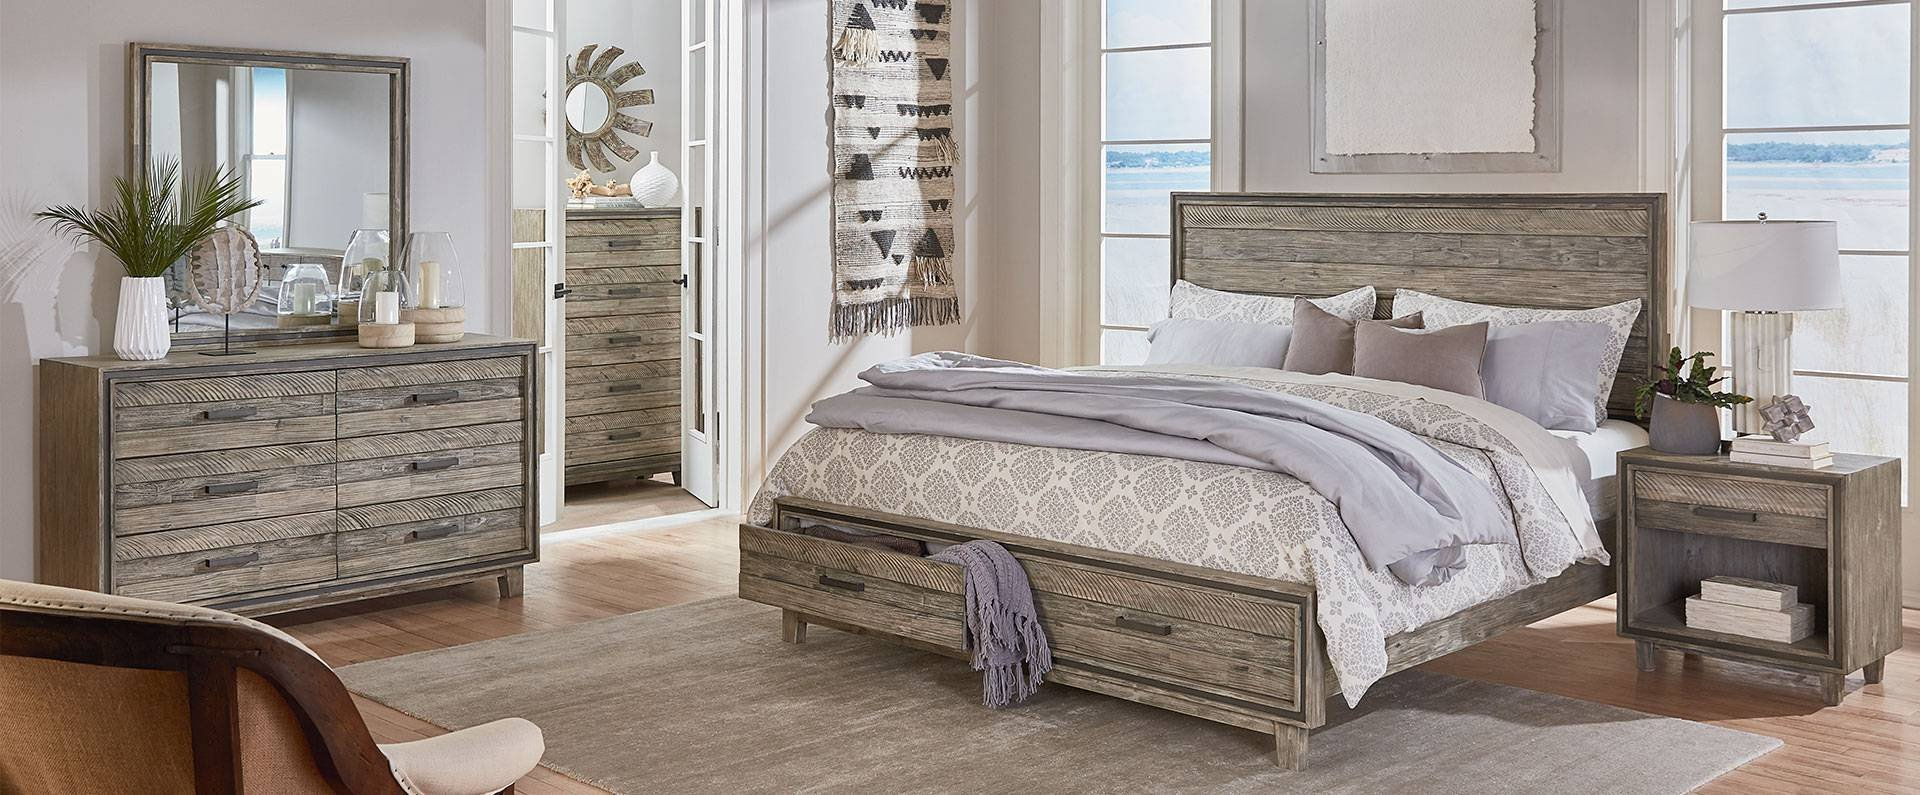 White Washed Bedroom Furniture Best Of Home Trends & Design